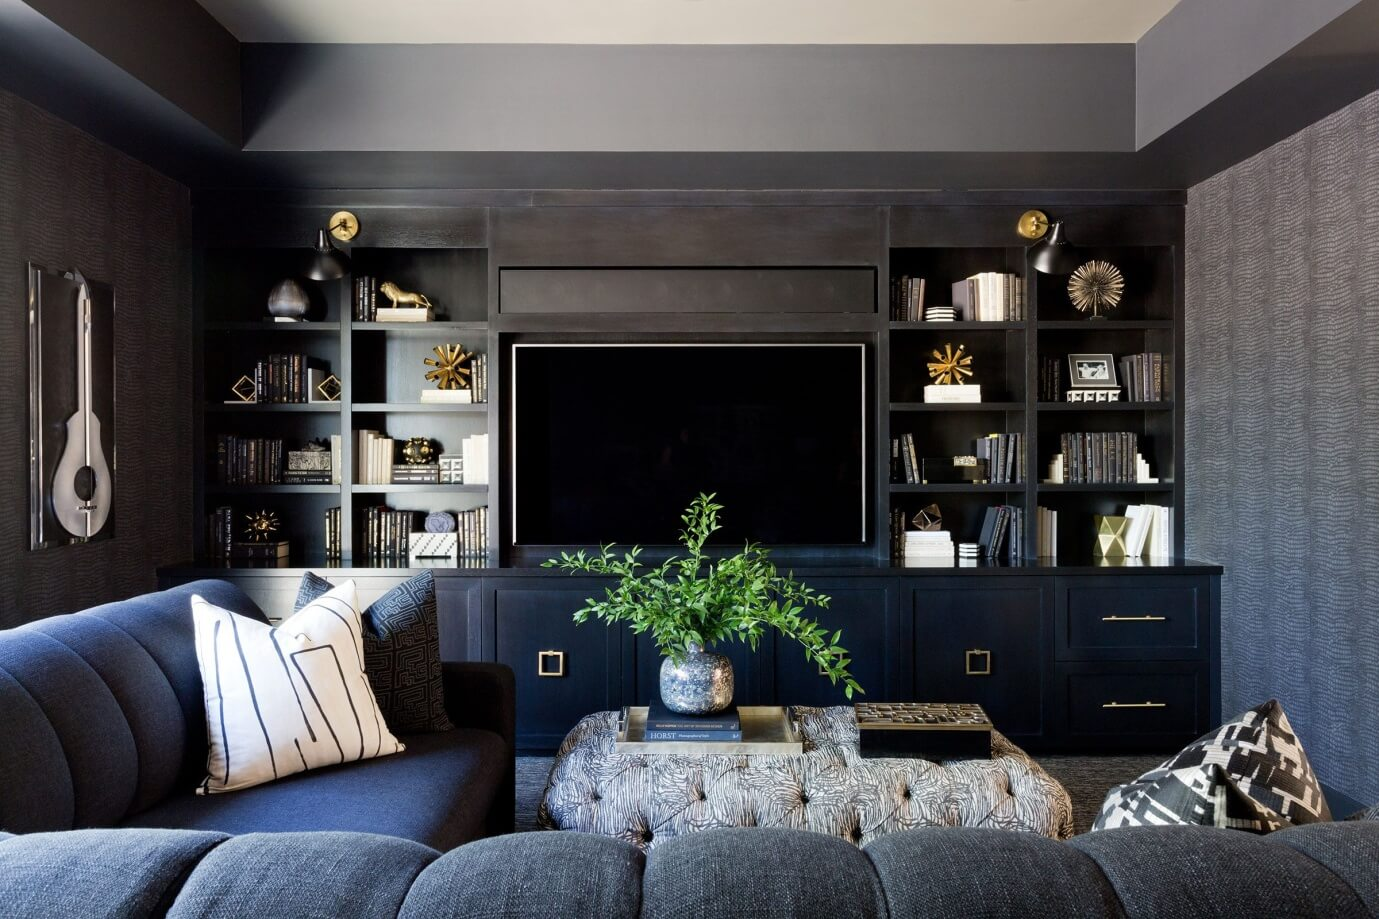 Living room with TV focal point - Task Masters Dubai